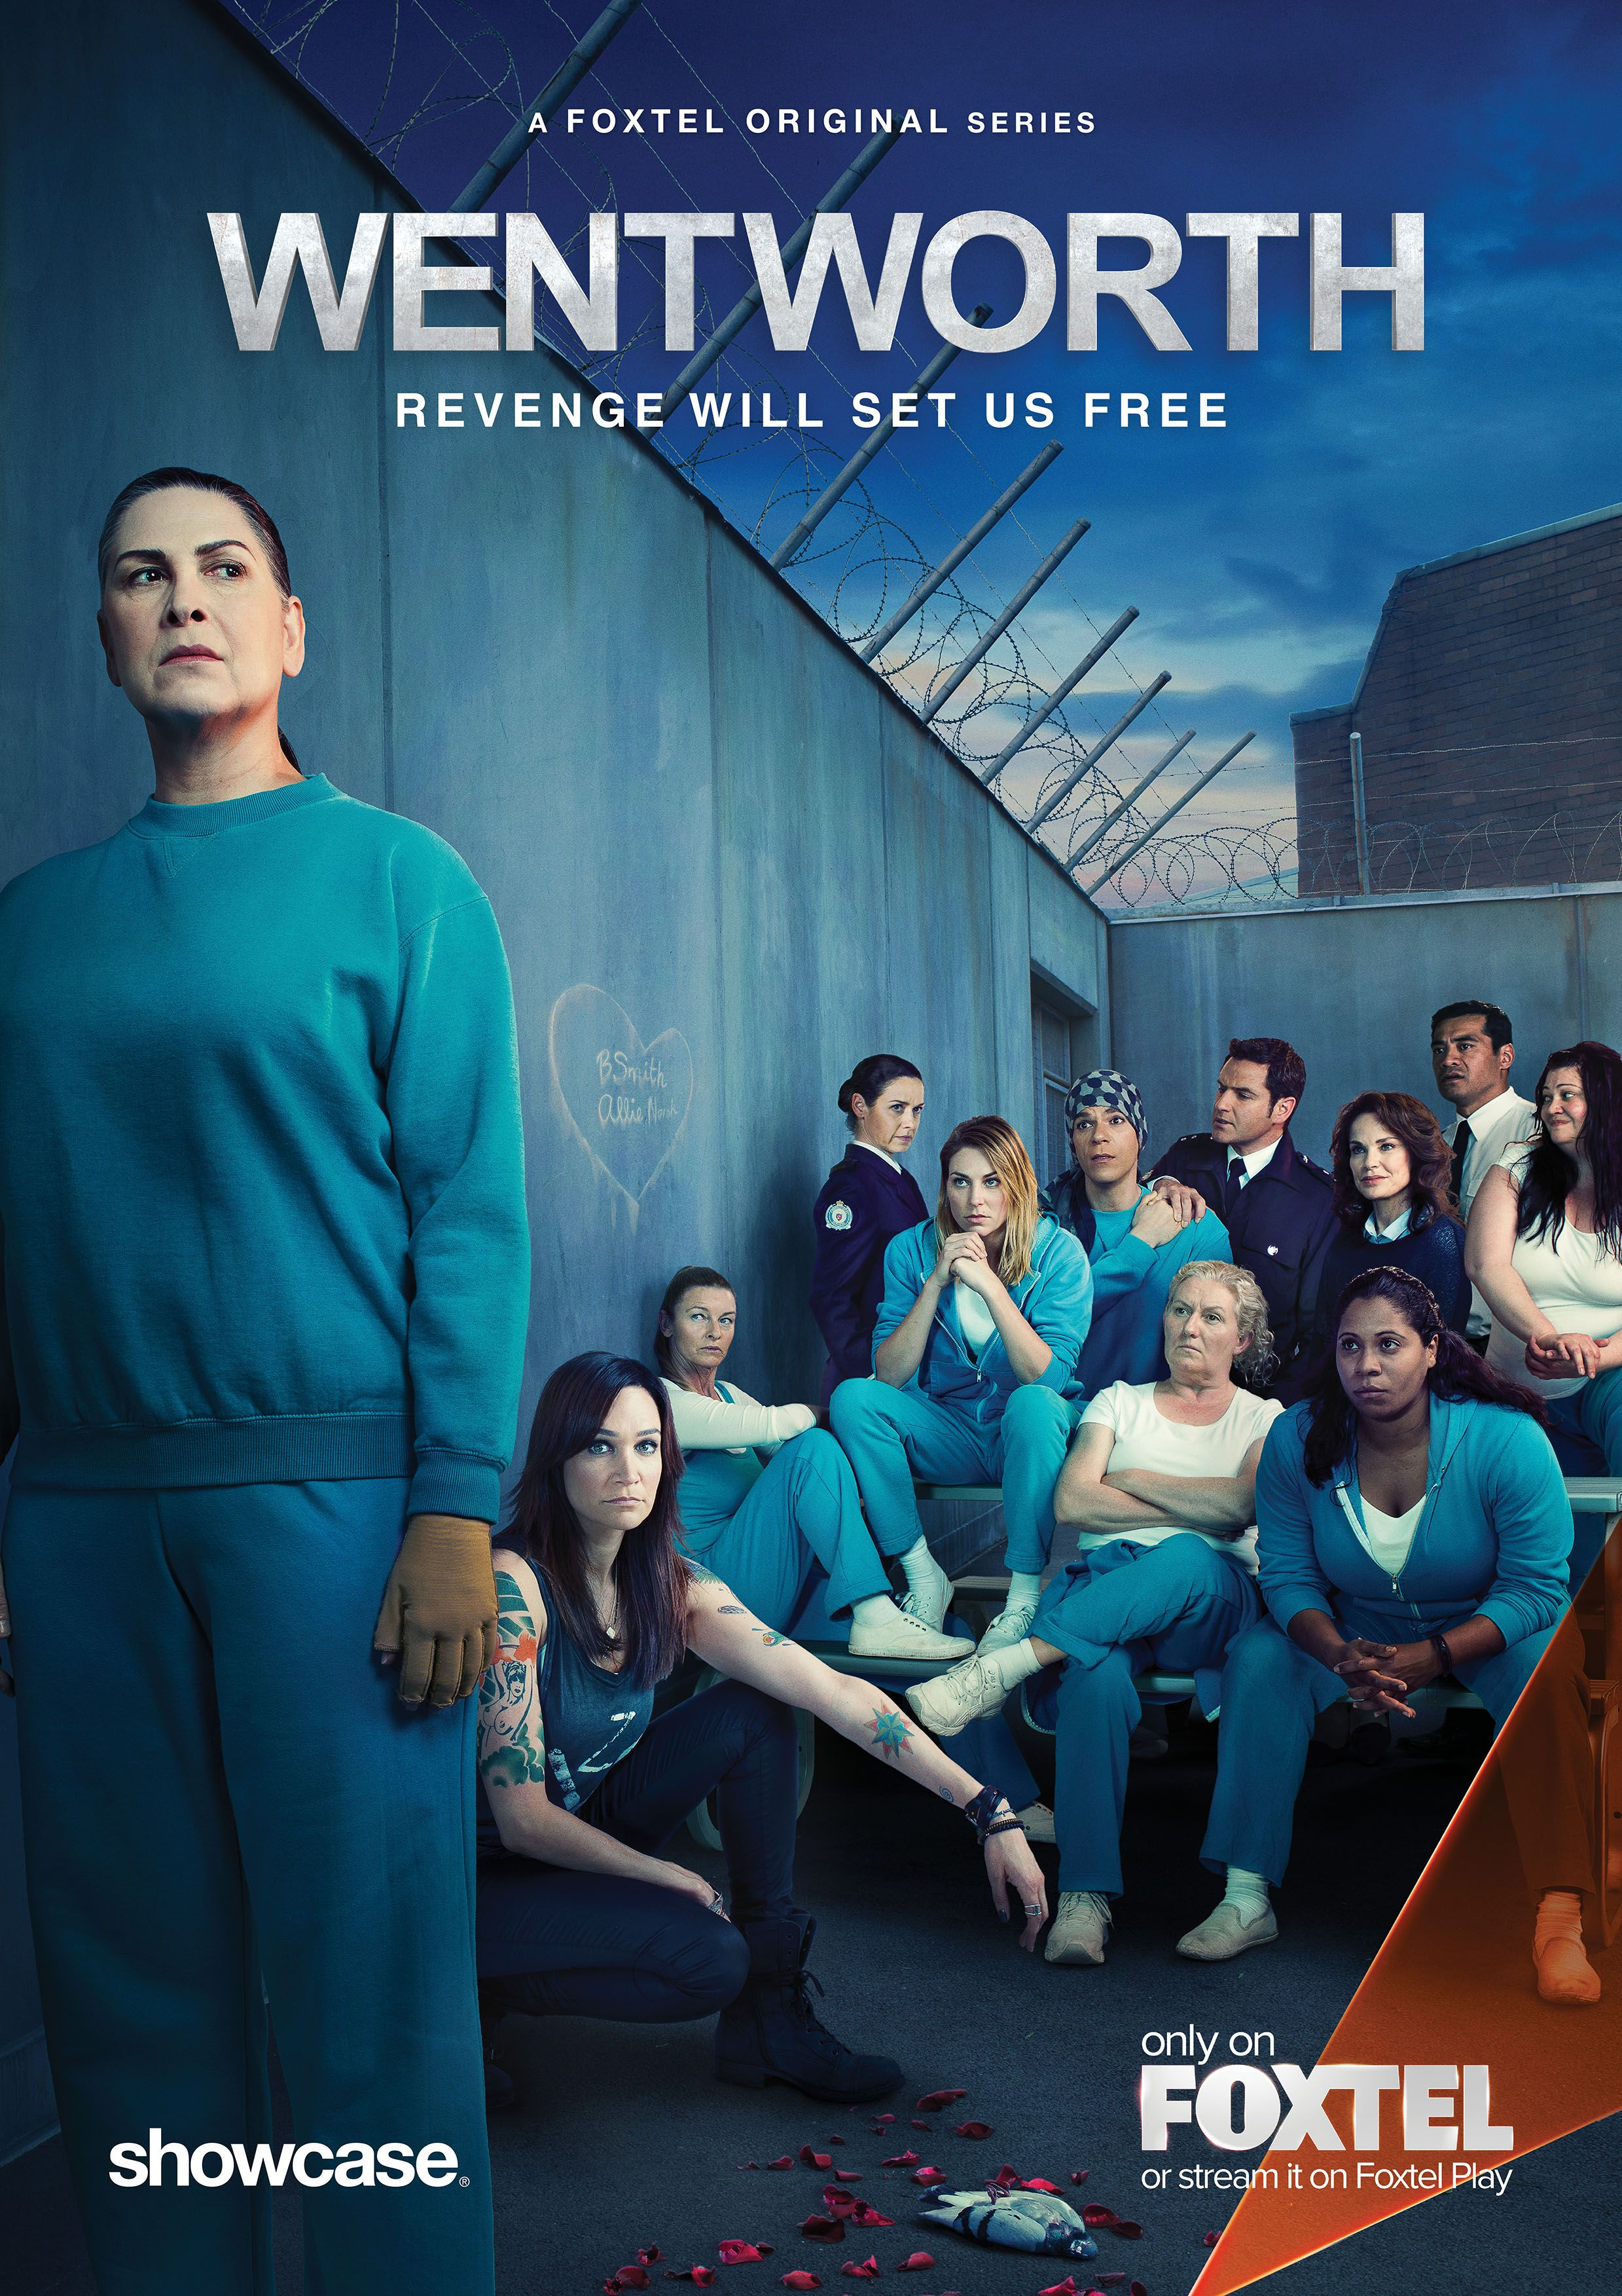 Pin By Lesweldster On Wentworth Poster Wentworth Prison